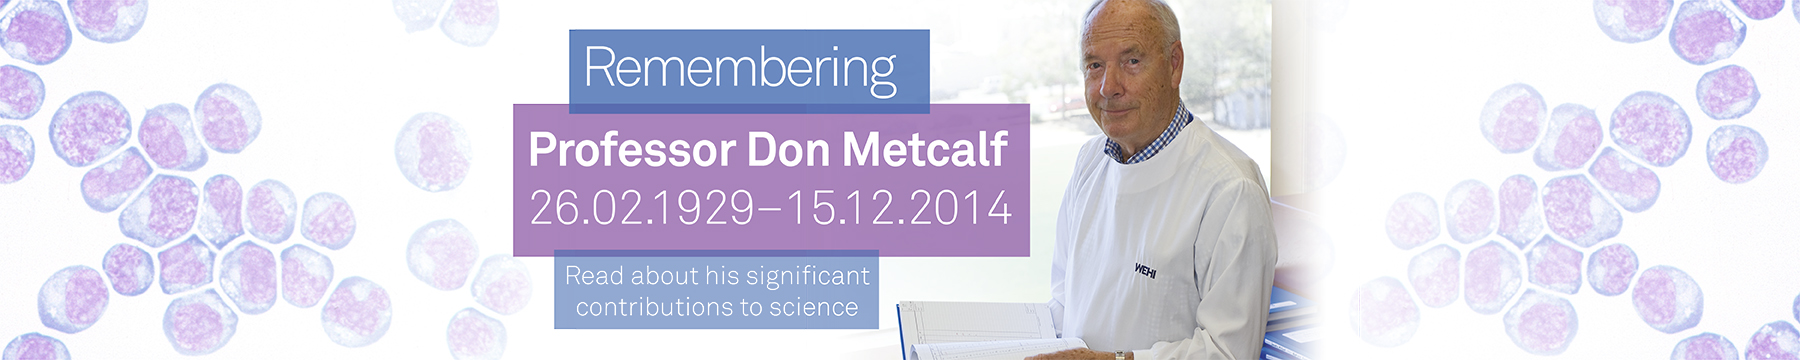 Remembering Professor Don Metcalf 26 February 1929 to 15 December 2014